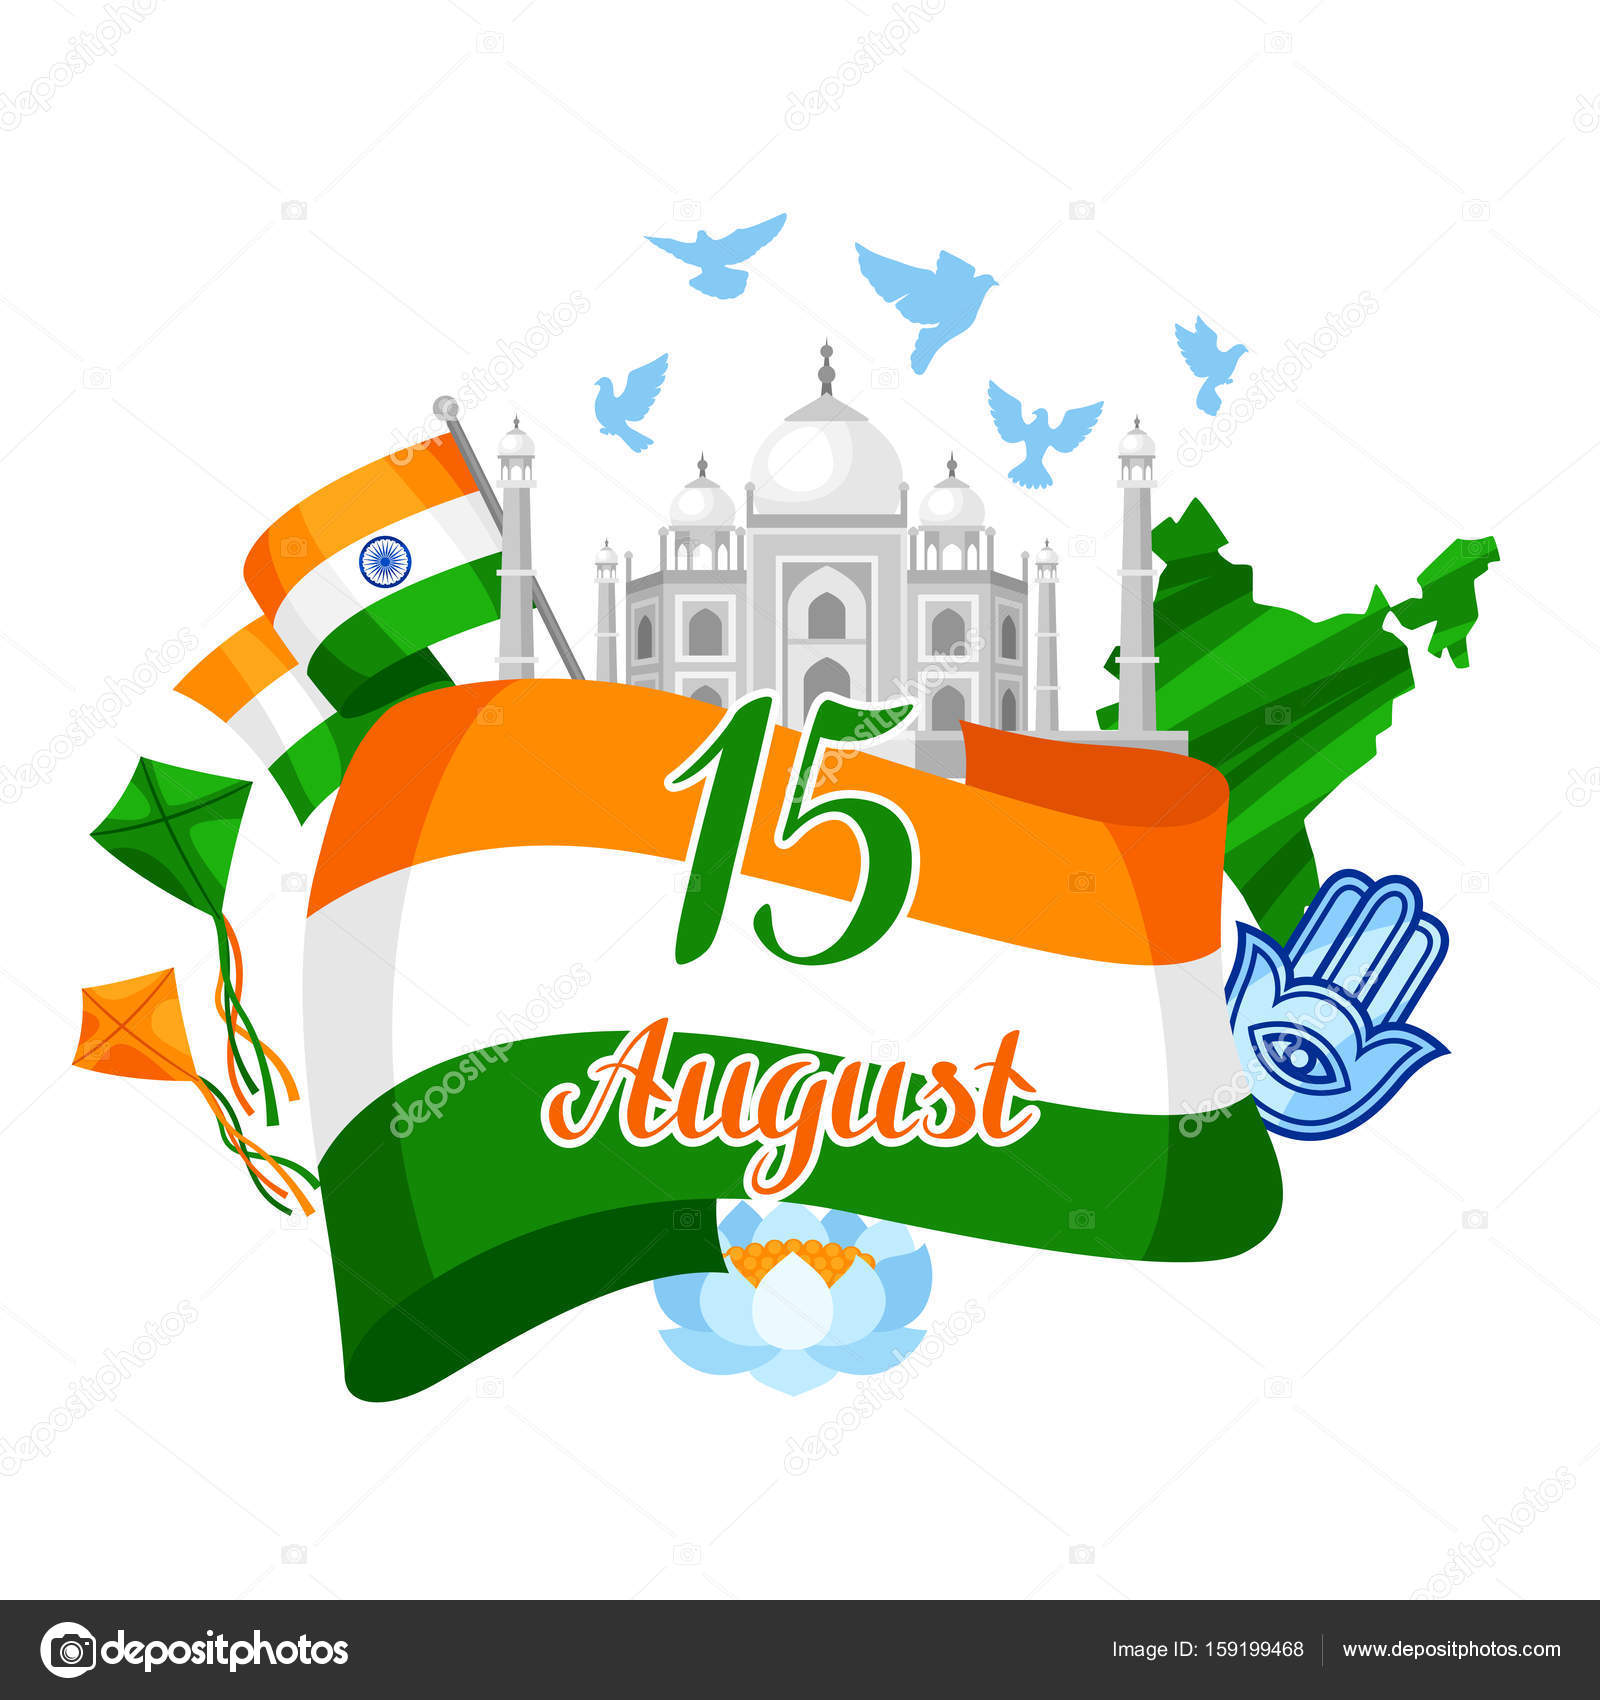 India independence day greeting card celebration 15 th of august india independence day greeting card celebration 15 th of august stock vector m4hsunfo